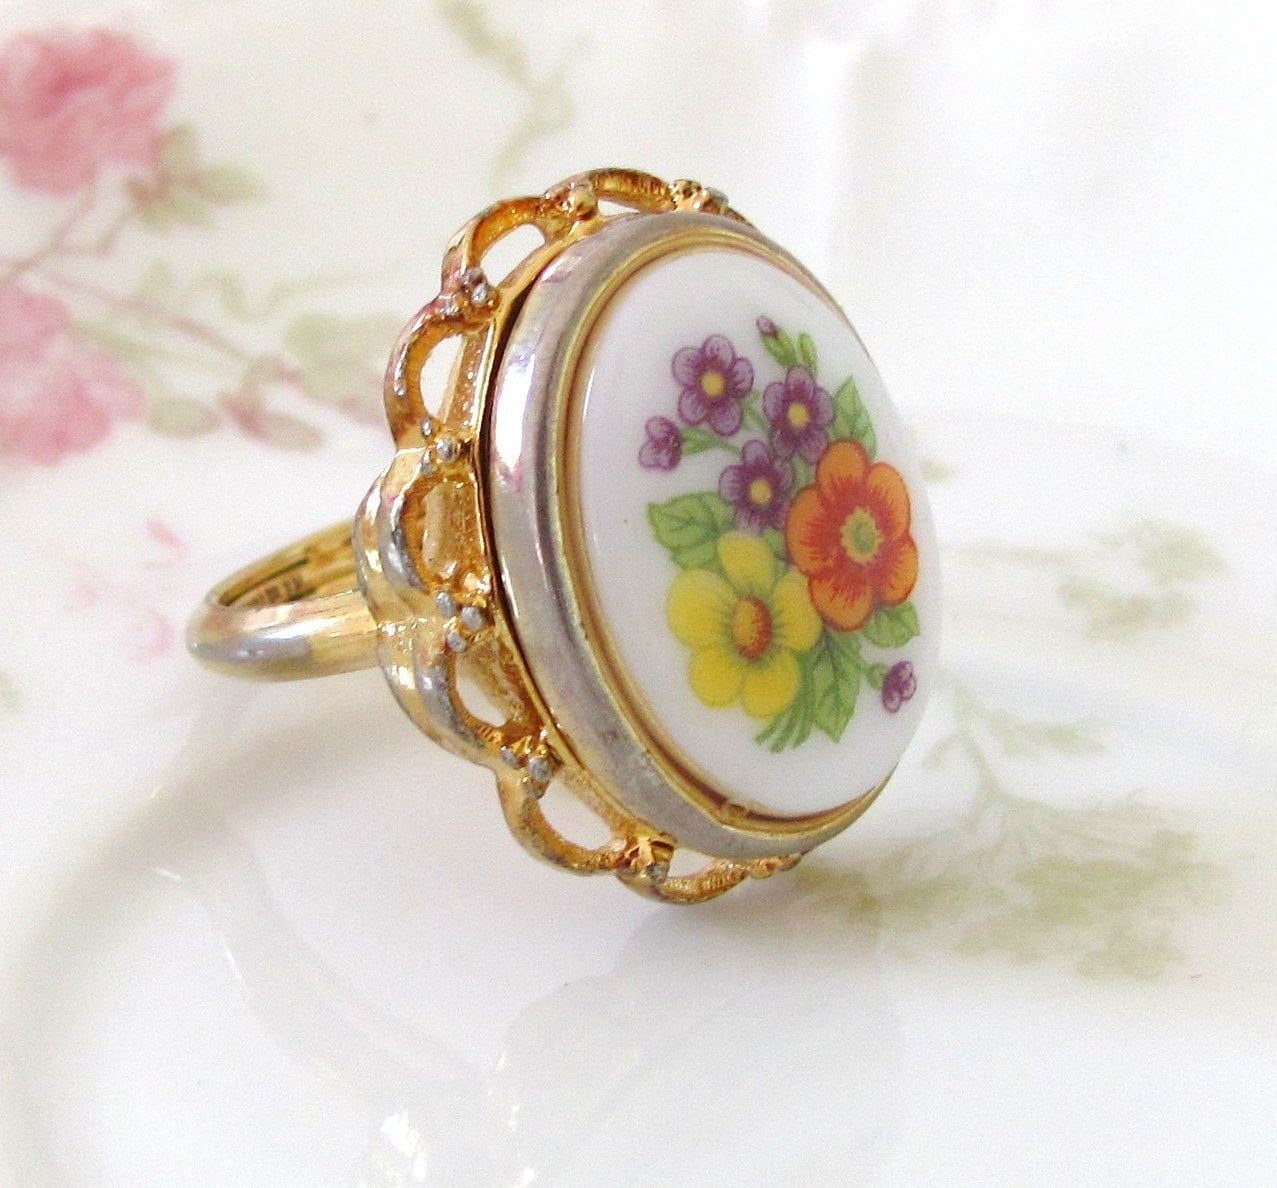 Vintage Bouquet of Flowers Locket Ring